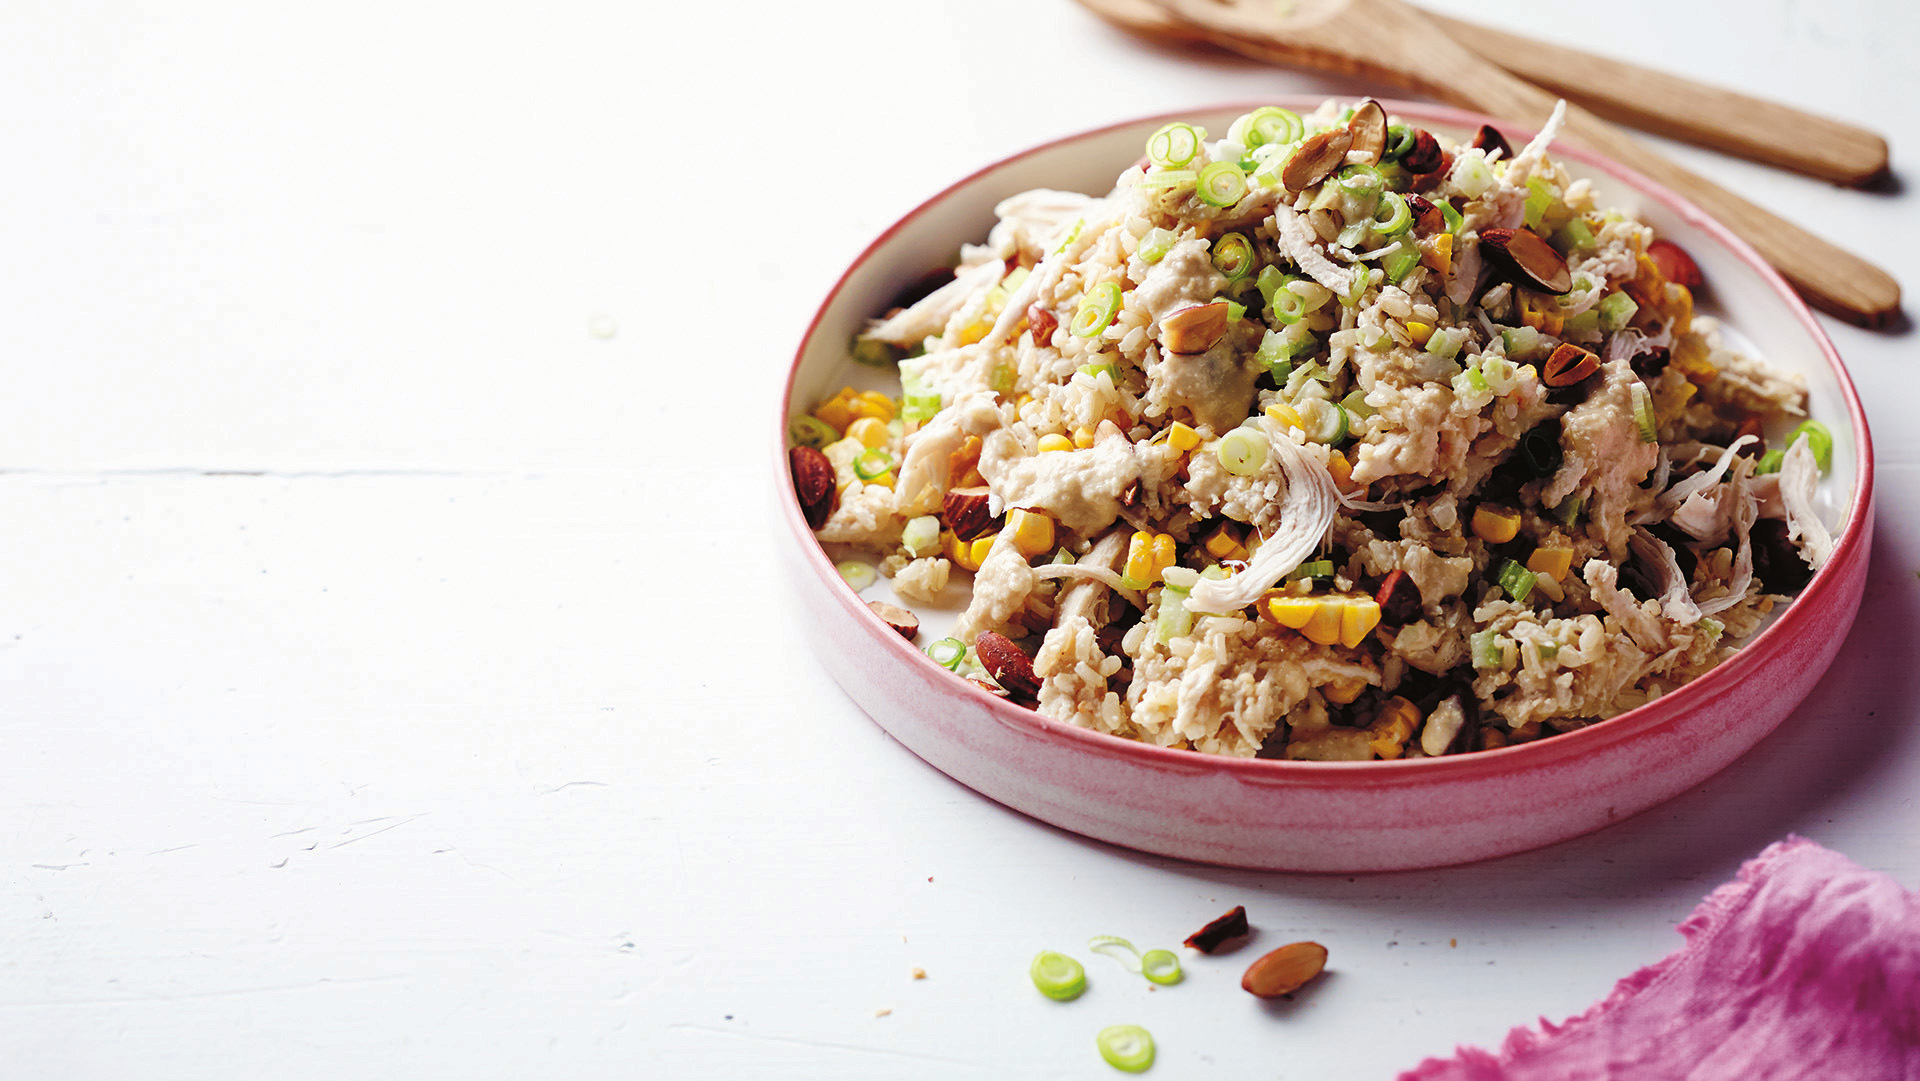 perfect-uber-salad-shredded-chicken-brown-rice-11146